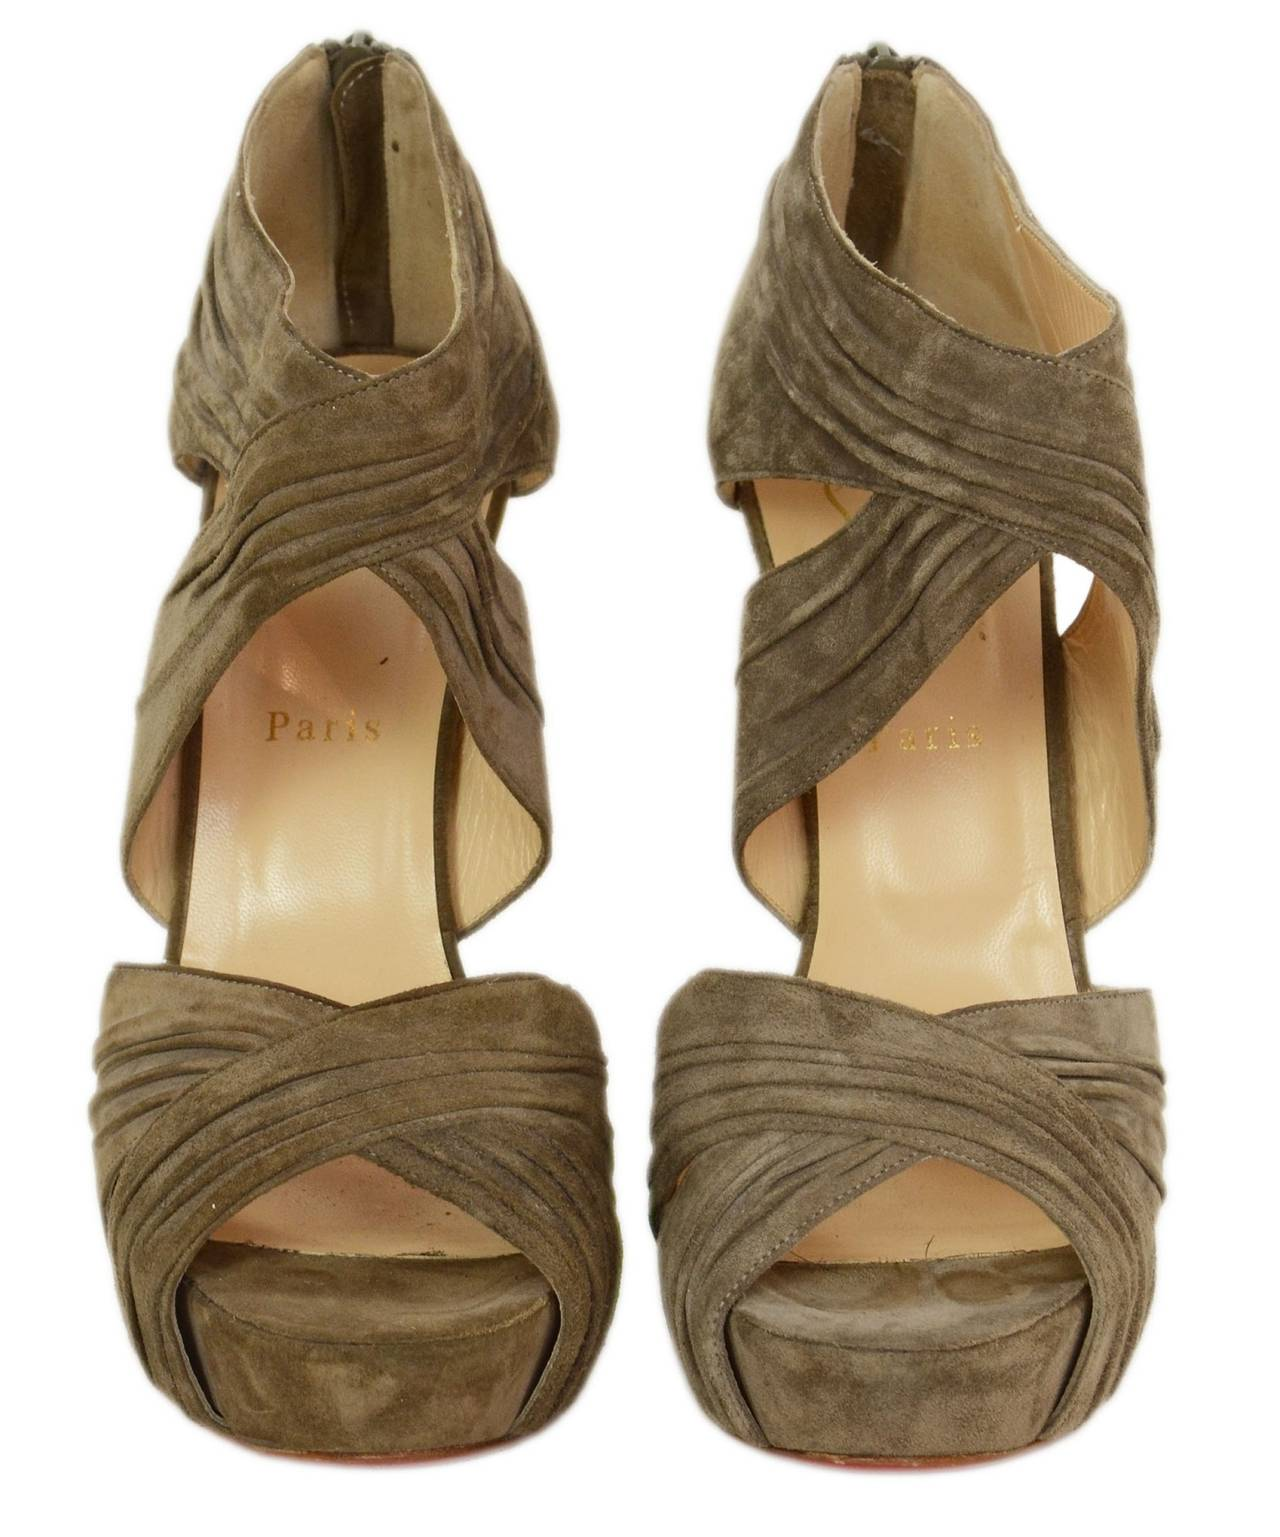 christian louboutin shoes cheap replica - CHRISTIAN LOUBOUTIN Ruched Taupe Suede Bandra 140 Pumps sz 40.5 at ...